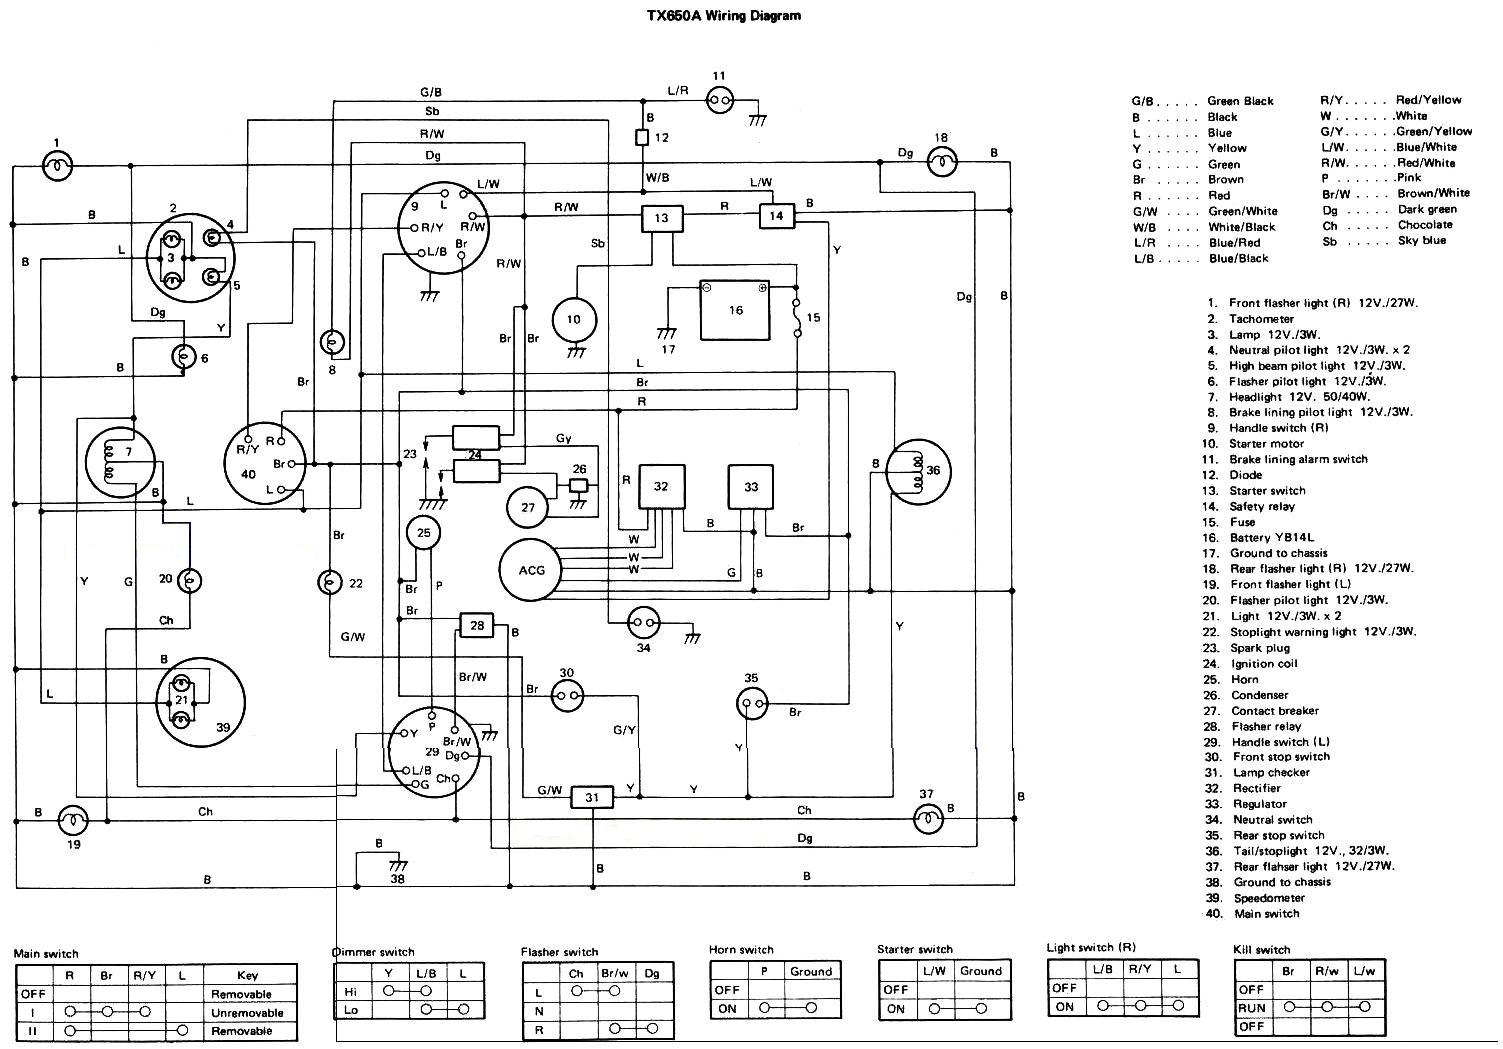 1980 xt250 wiring diagram